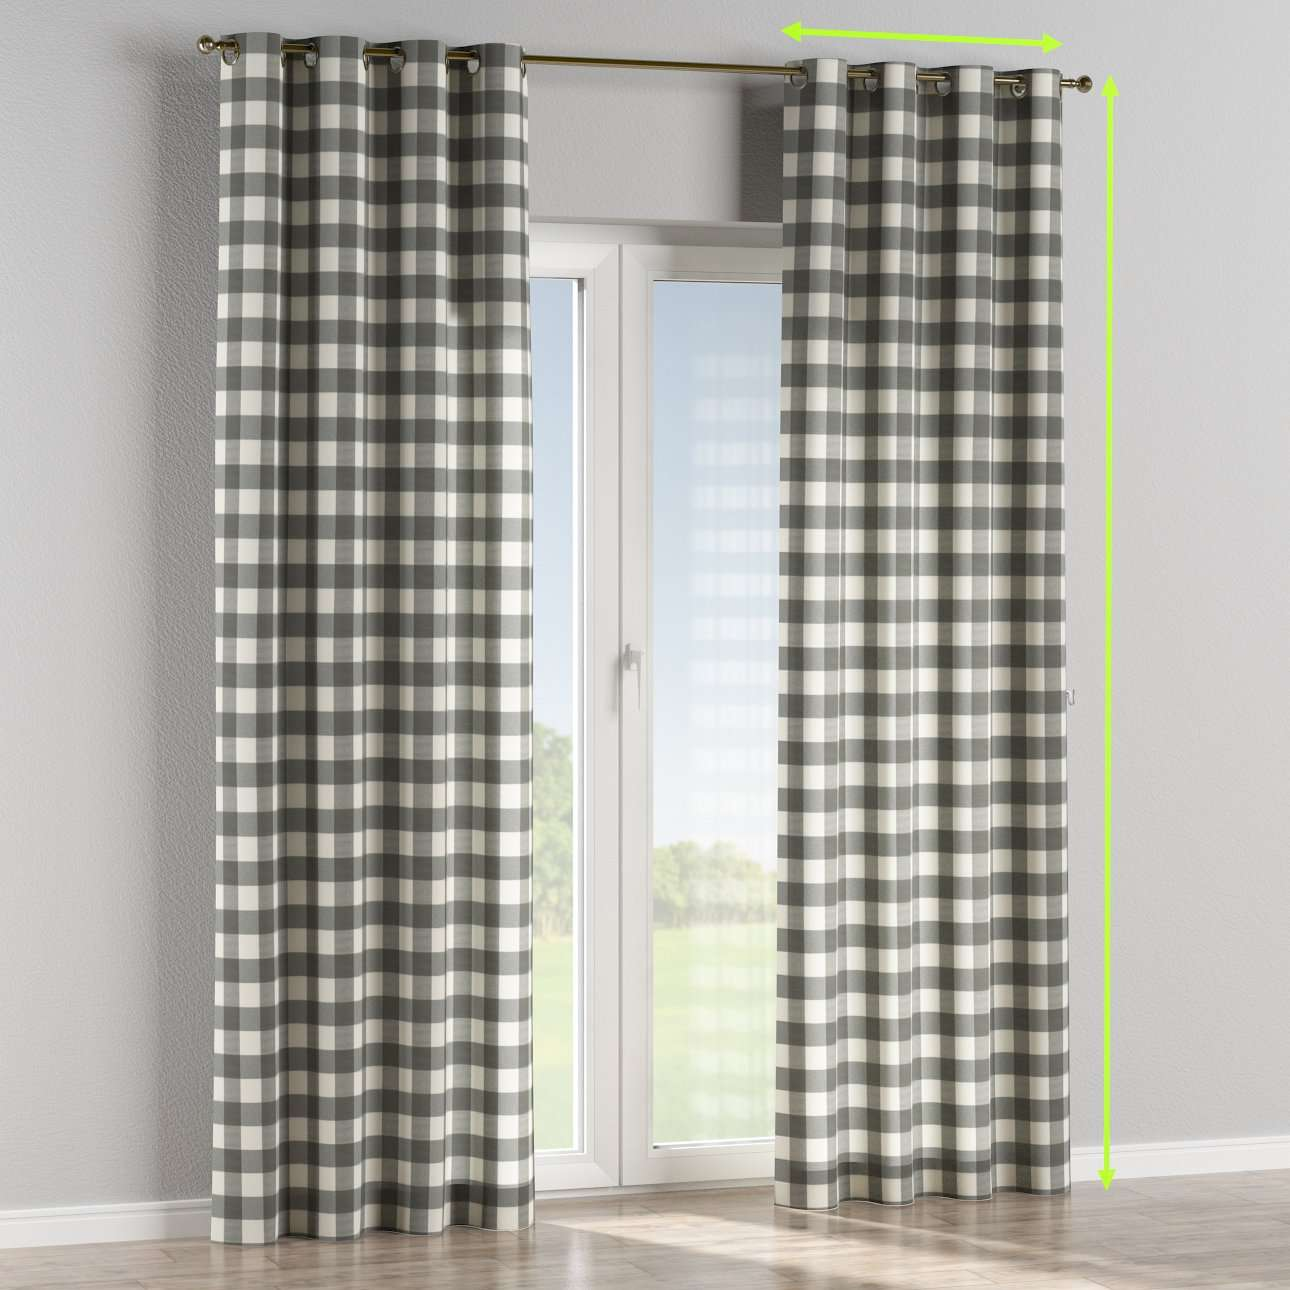 Eyelet curtains in collection Quadro, fabric: 136-13